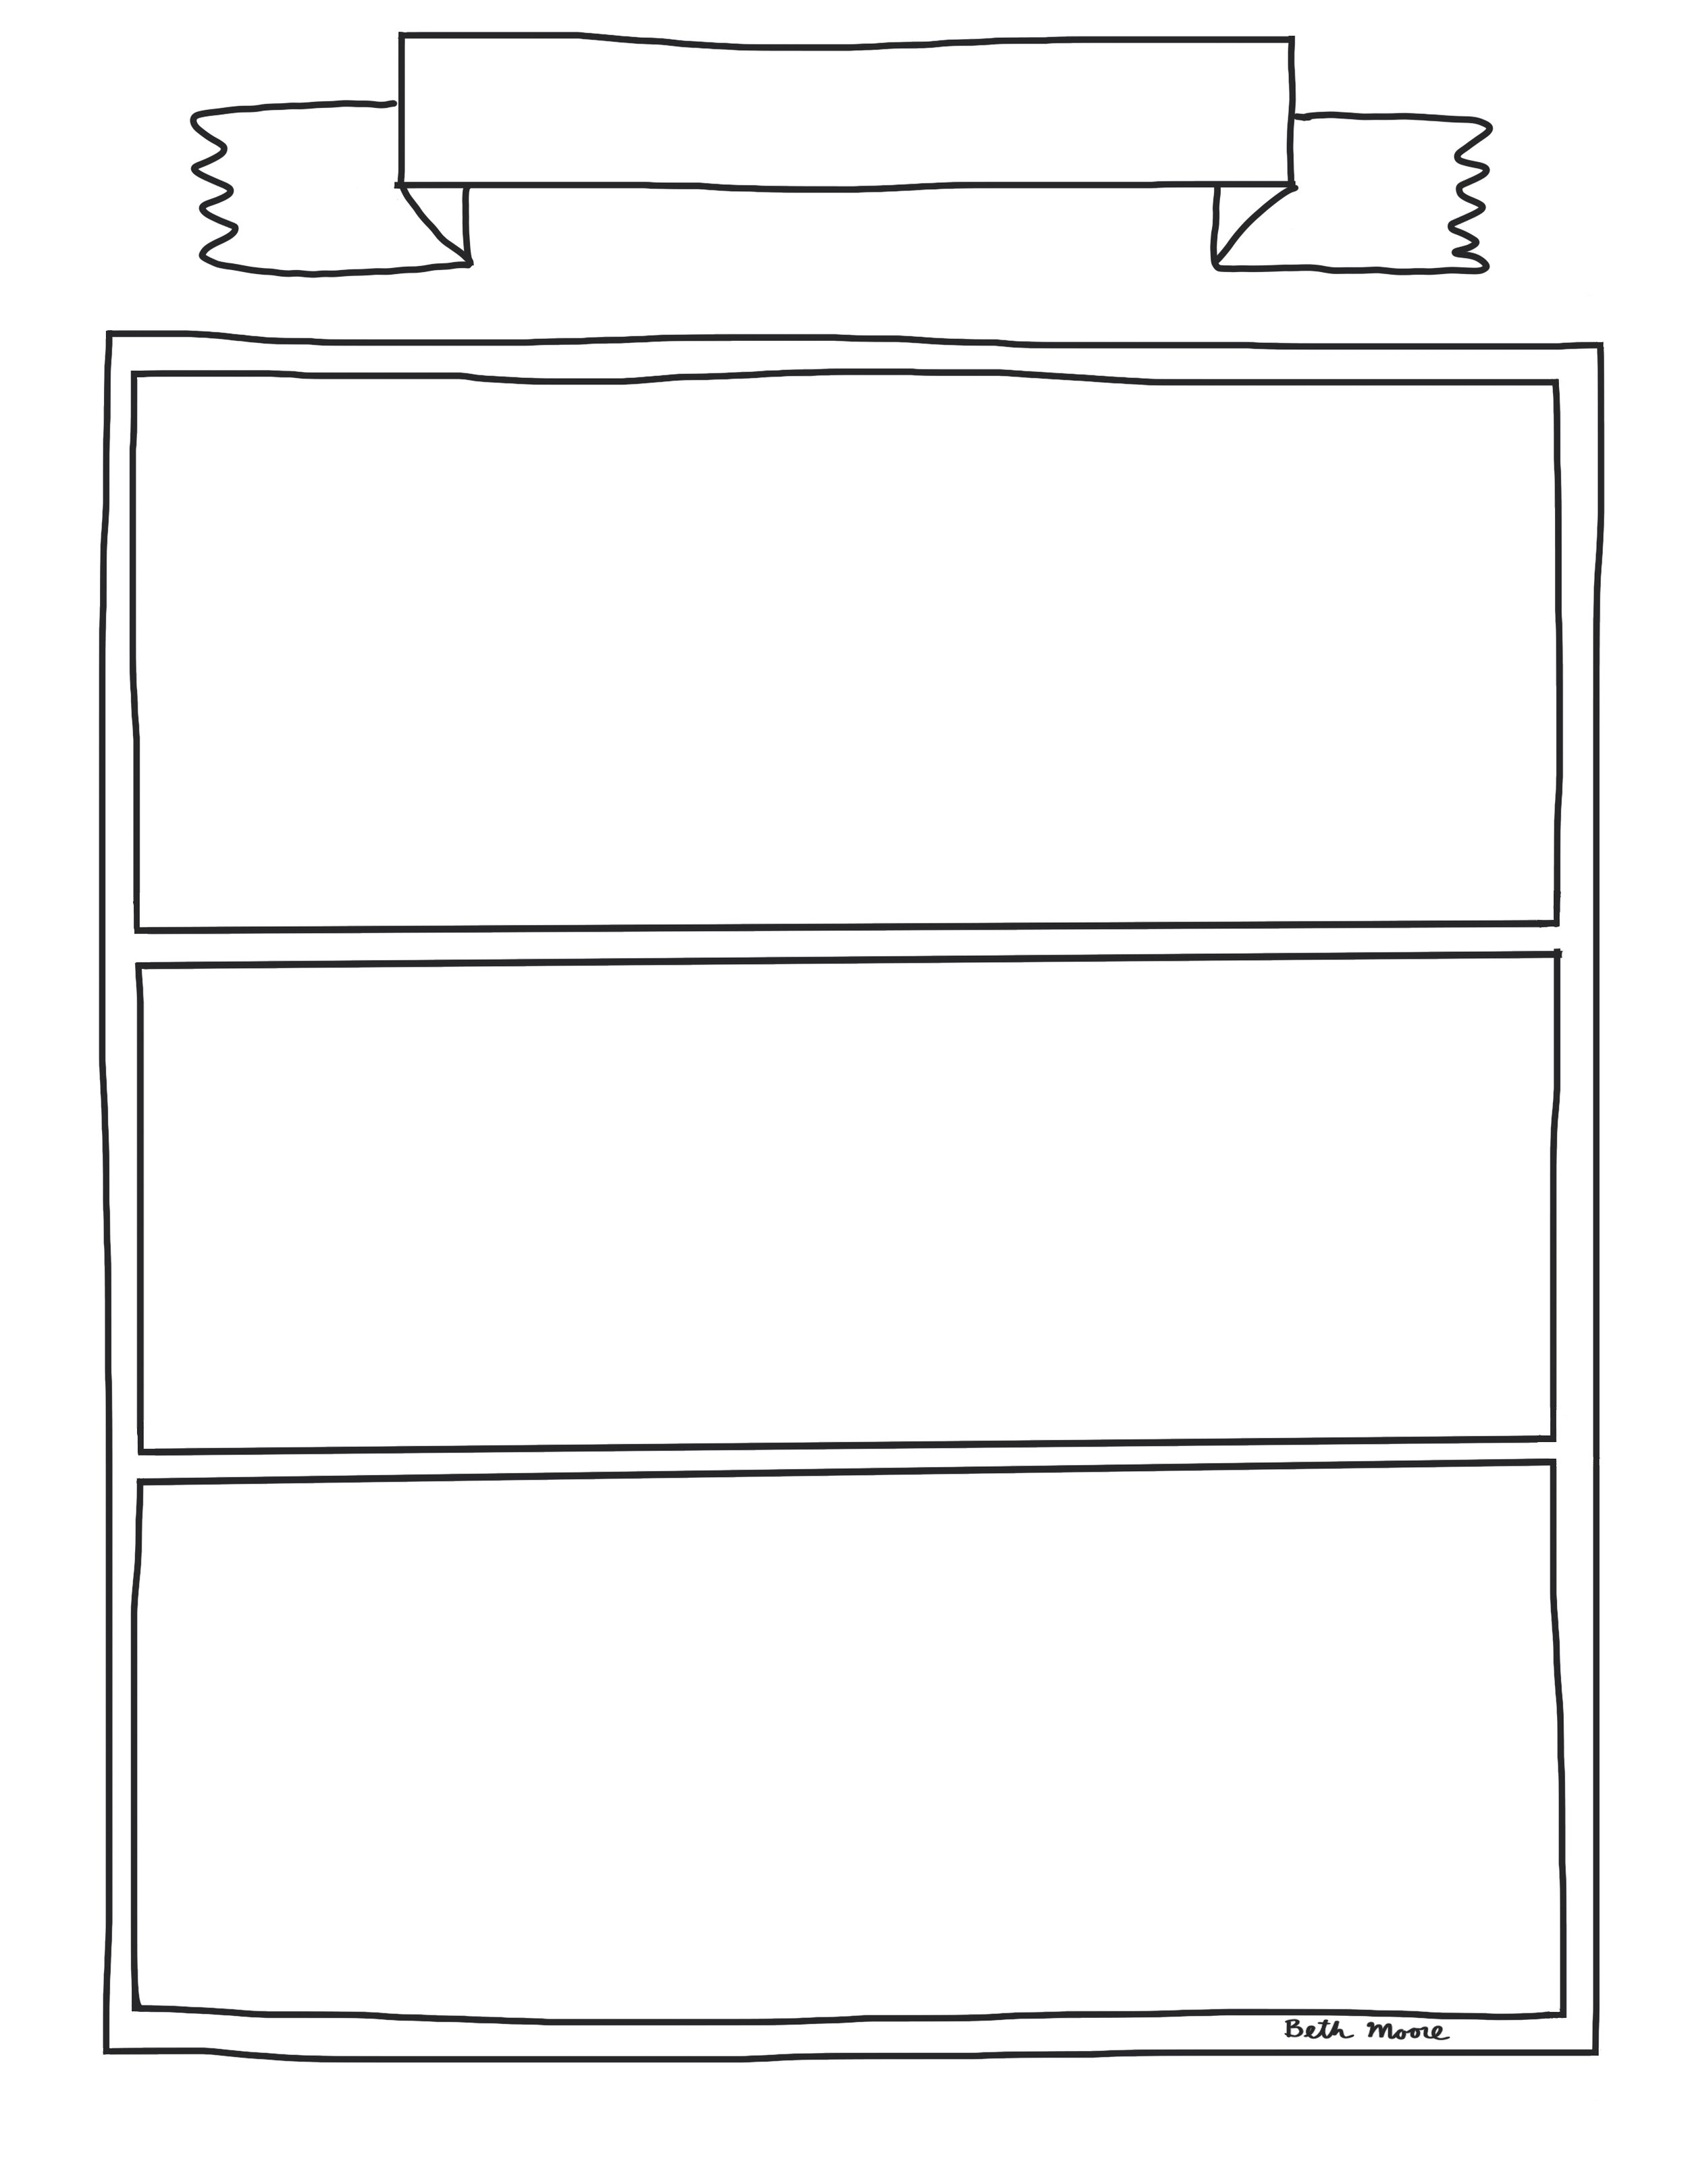 Totally Blank Shelf - This template is blank to allow you or students to draw your own book spines (helpful in case the books in the other templates are too small for your readers and writers to fit their titles).